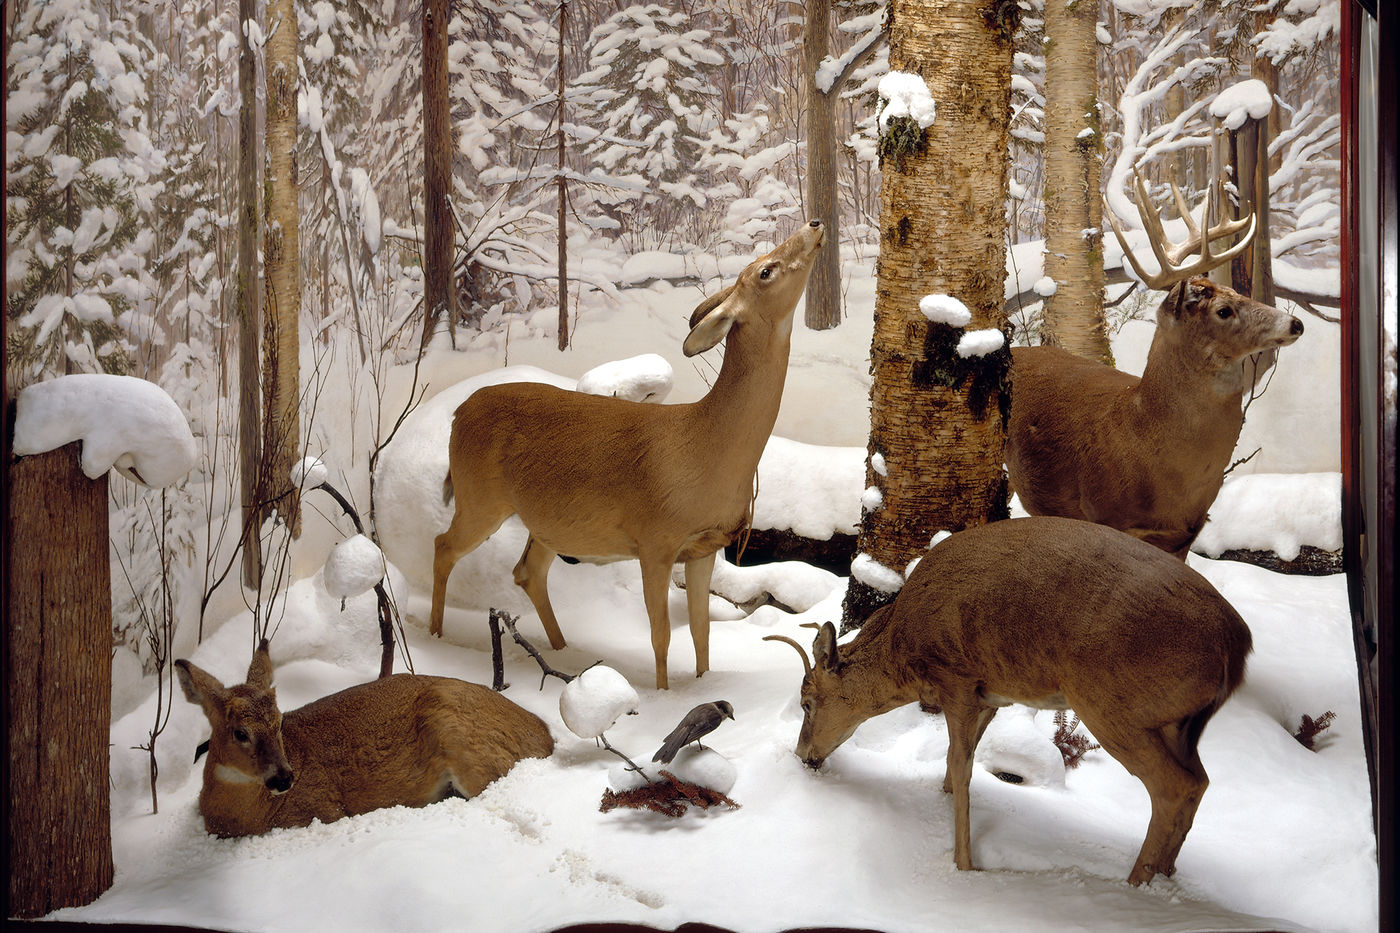 Taxidermied white-tailed deer specimens inside a diorama staged to resemble a winter forest with snow covering the ground and snow-covered trees in the background. Three deer, one with antlers, stand around a tree, and the fourth lies down in the left corner.